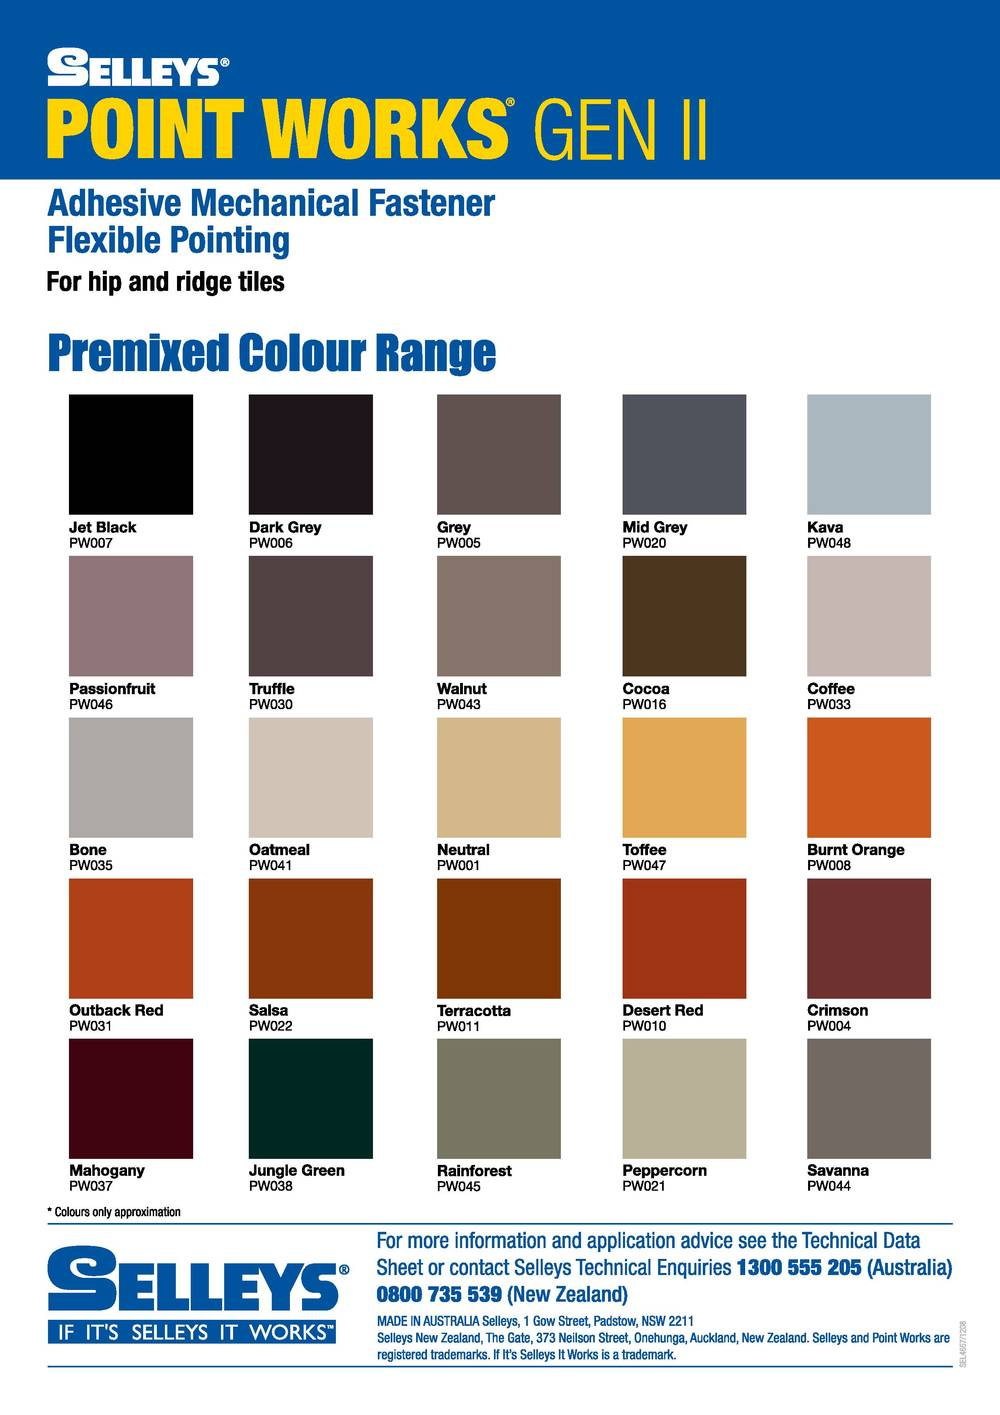 Roofing Component on Mixing Colours